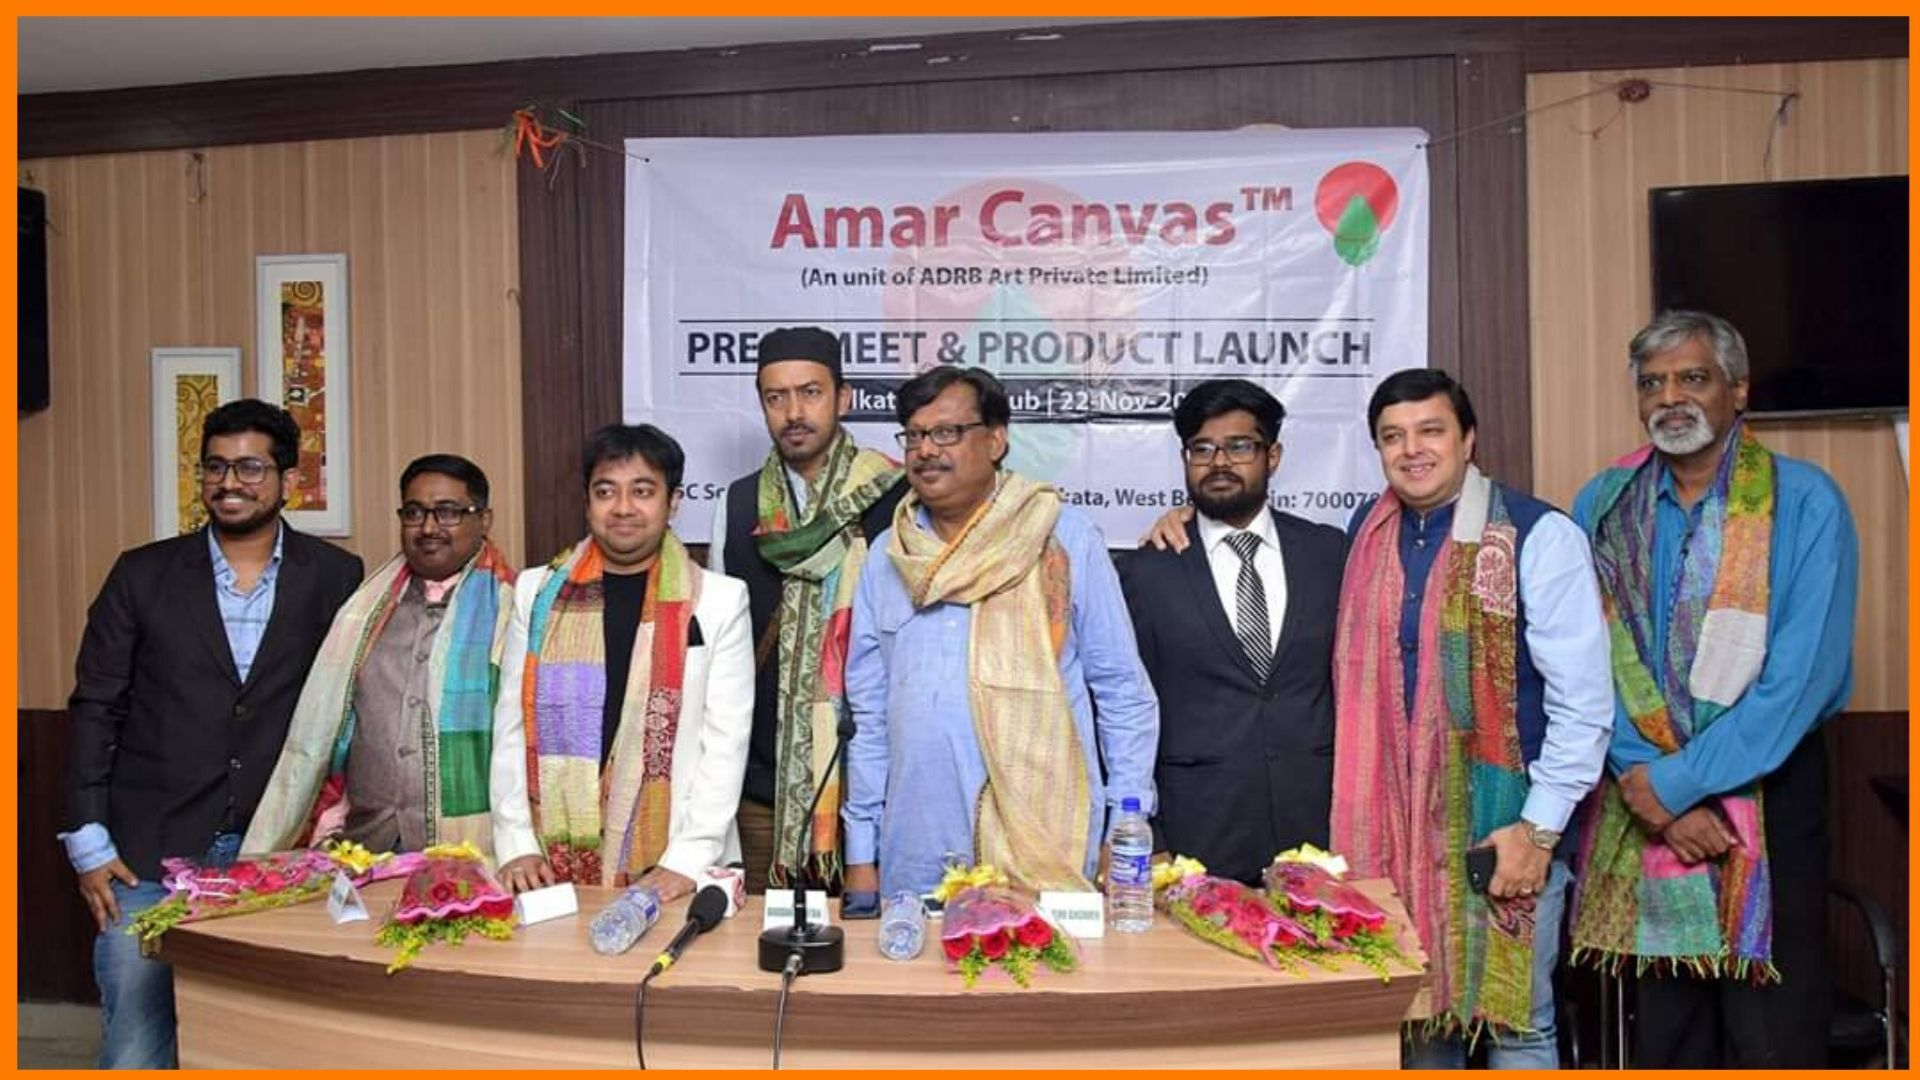 Amar Canvas Launch